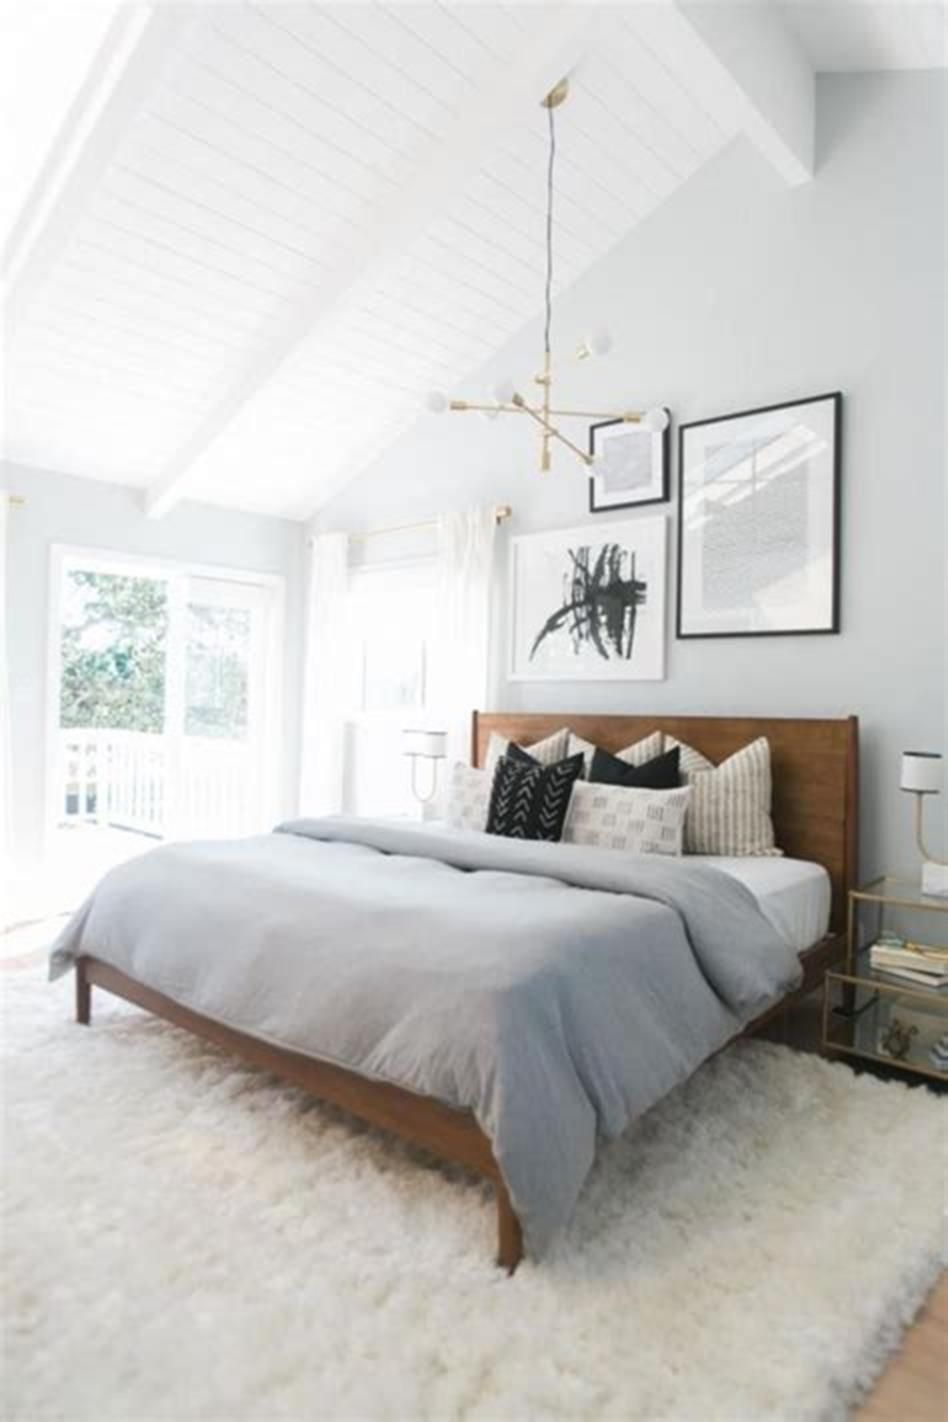 40 Cozy Minimalist Bedroom Decorating Ideas In 2019 Bedroom Interior Bedroom Design Bedroom Inspirations